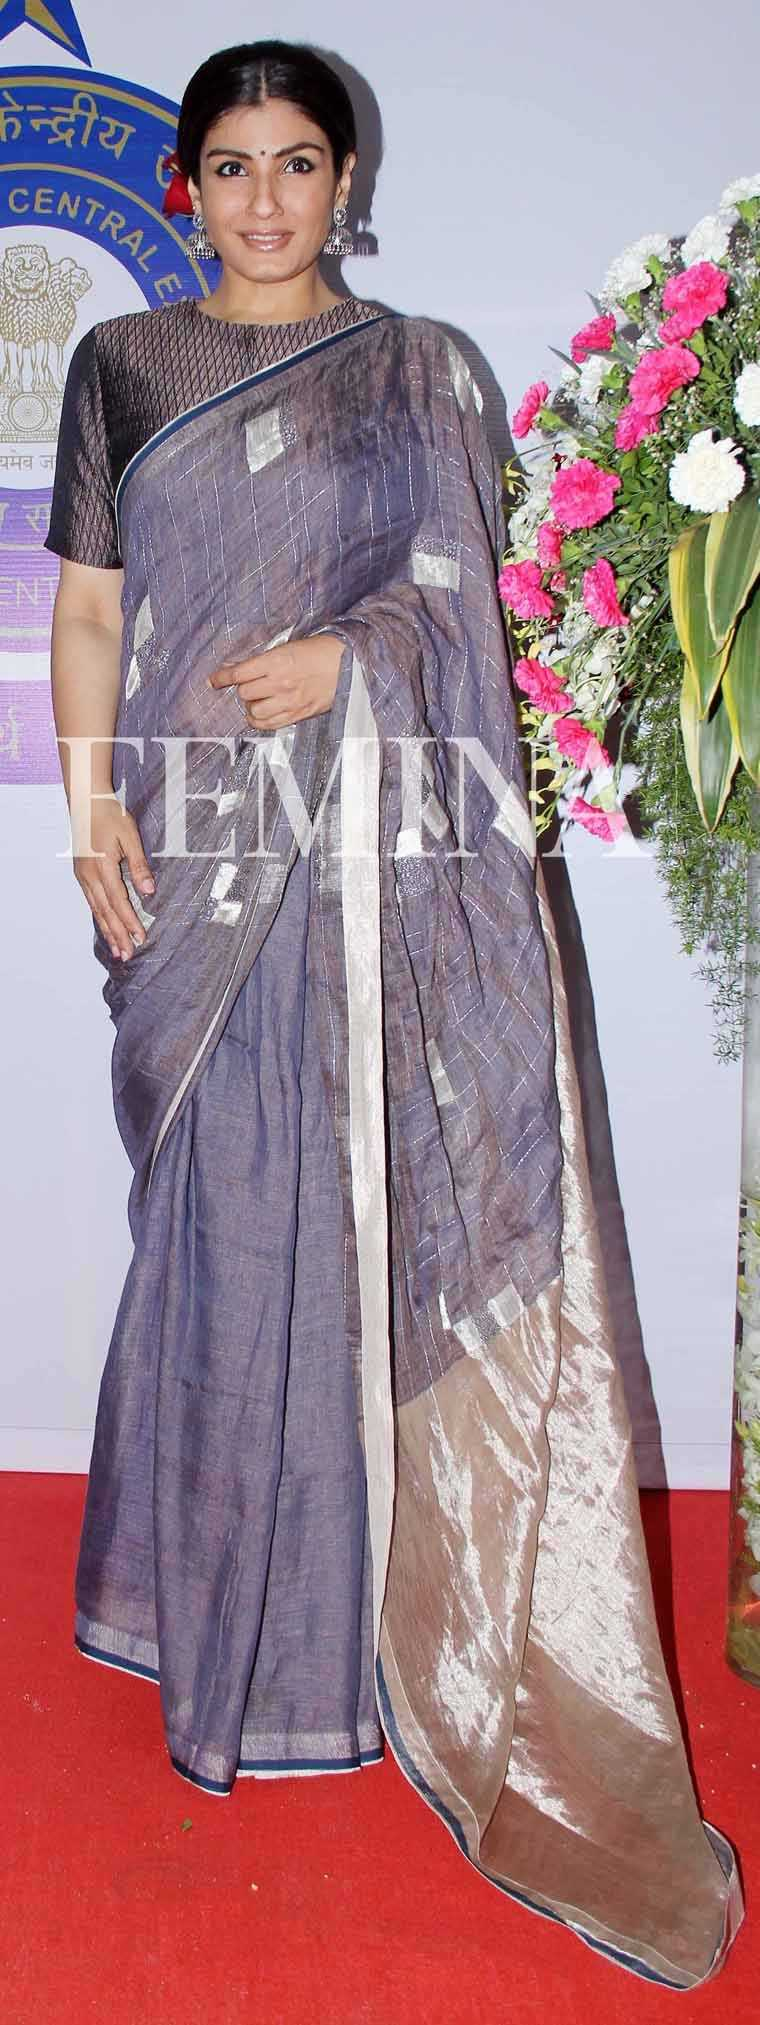 Raveena-Tandon-Central-Excise-Day